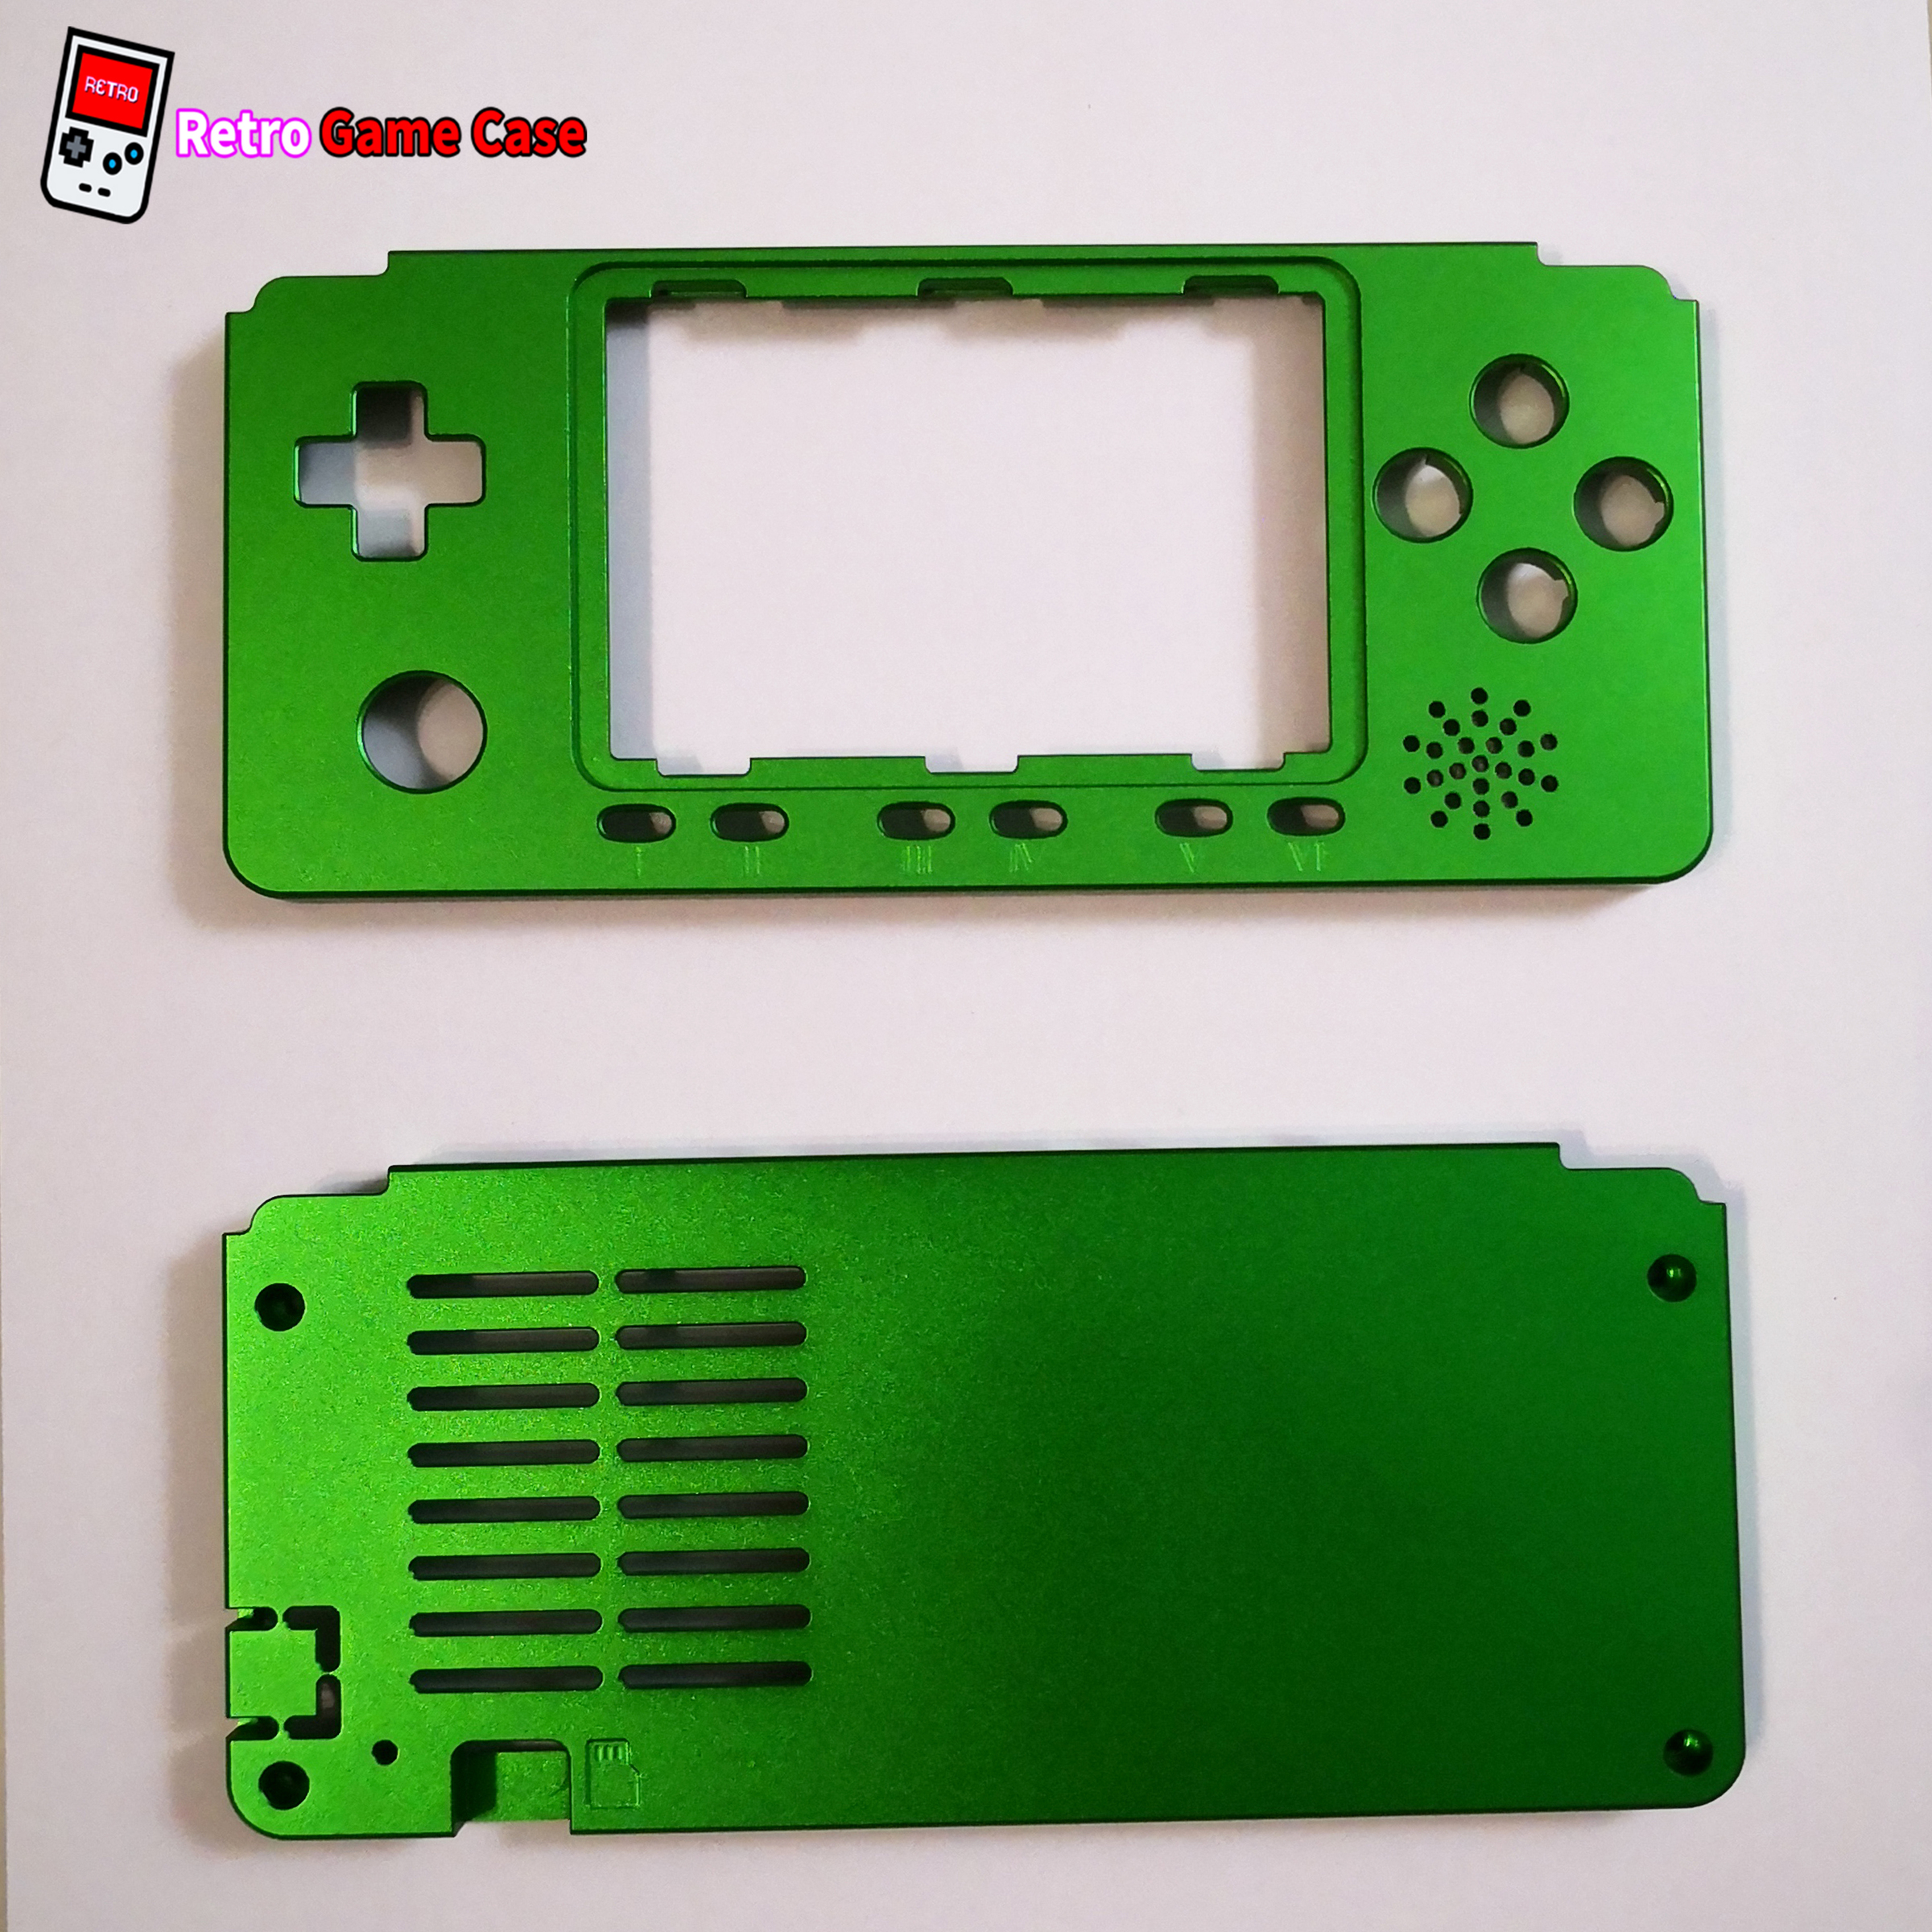 My_retro_game_case_Game_Kiddy_OGA_Metal_shell_case_green.jpg